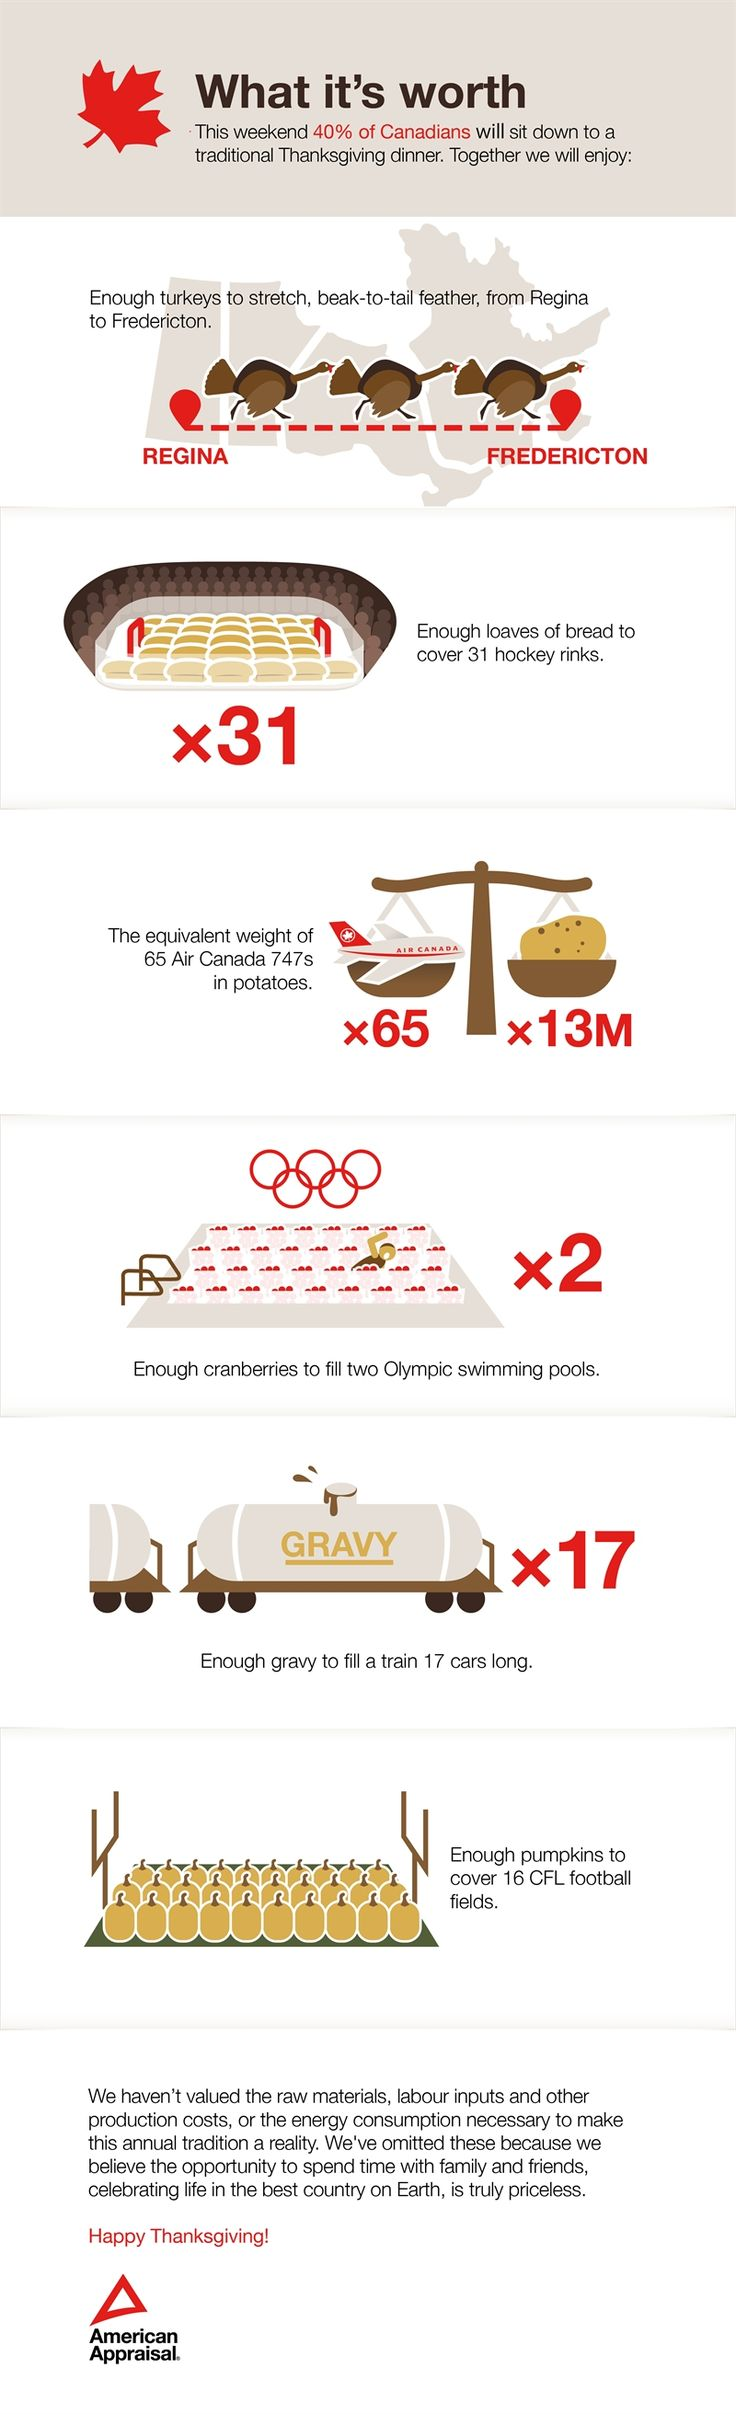 Canadian Thanksgiving - by the numbers!